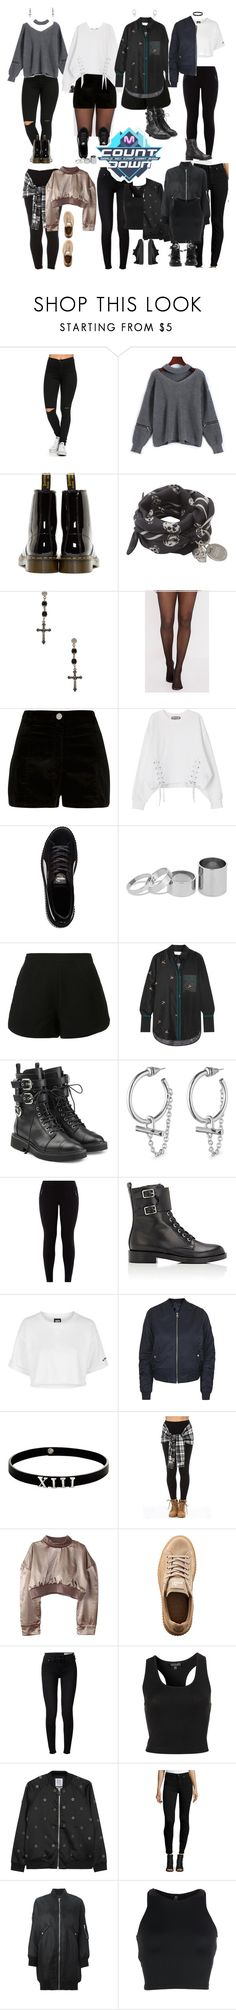 """""""REXH O.K/Debut stage"""" by rexhogaccount ❤ liked on Polyvore featuring Dr. Martens, Alexander McQueen, Givenchy, River Island, Puma, Betty Jackson, Alexis, Victoria, Victoria Beckham, Giuseppe Zanotti and Eddie Borgo"""